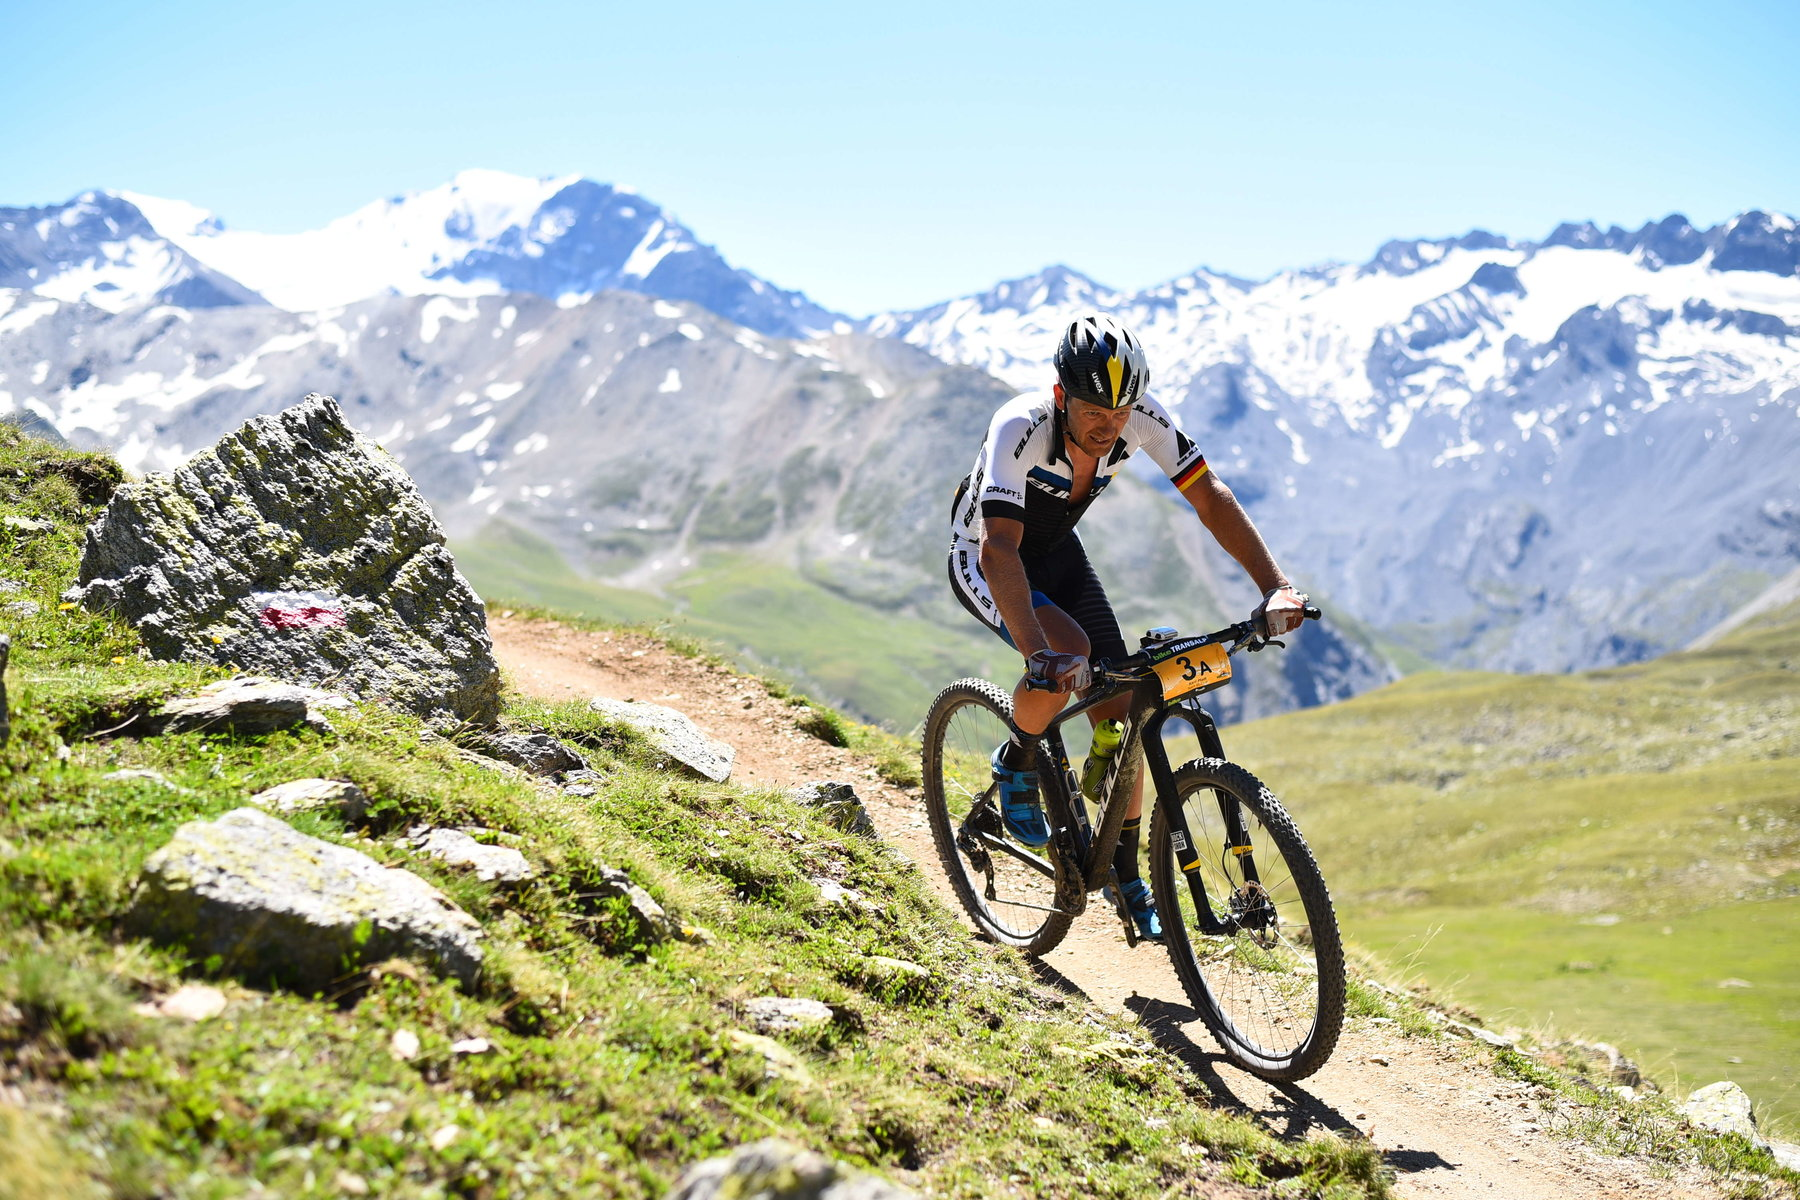 Karl racing at BIKE Transalp which he has won 7 times. Image ©: Sportograf